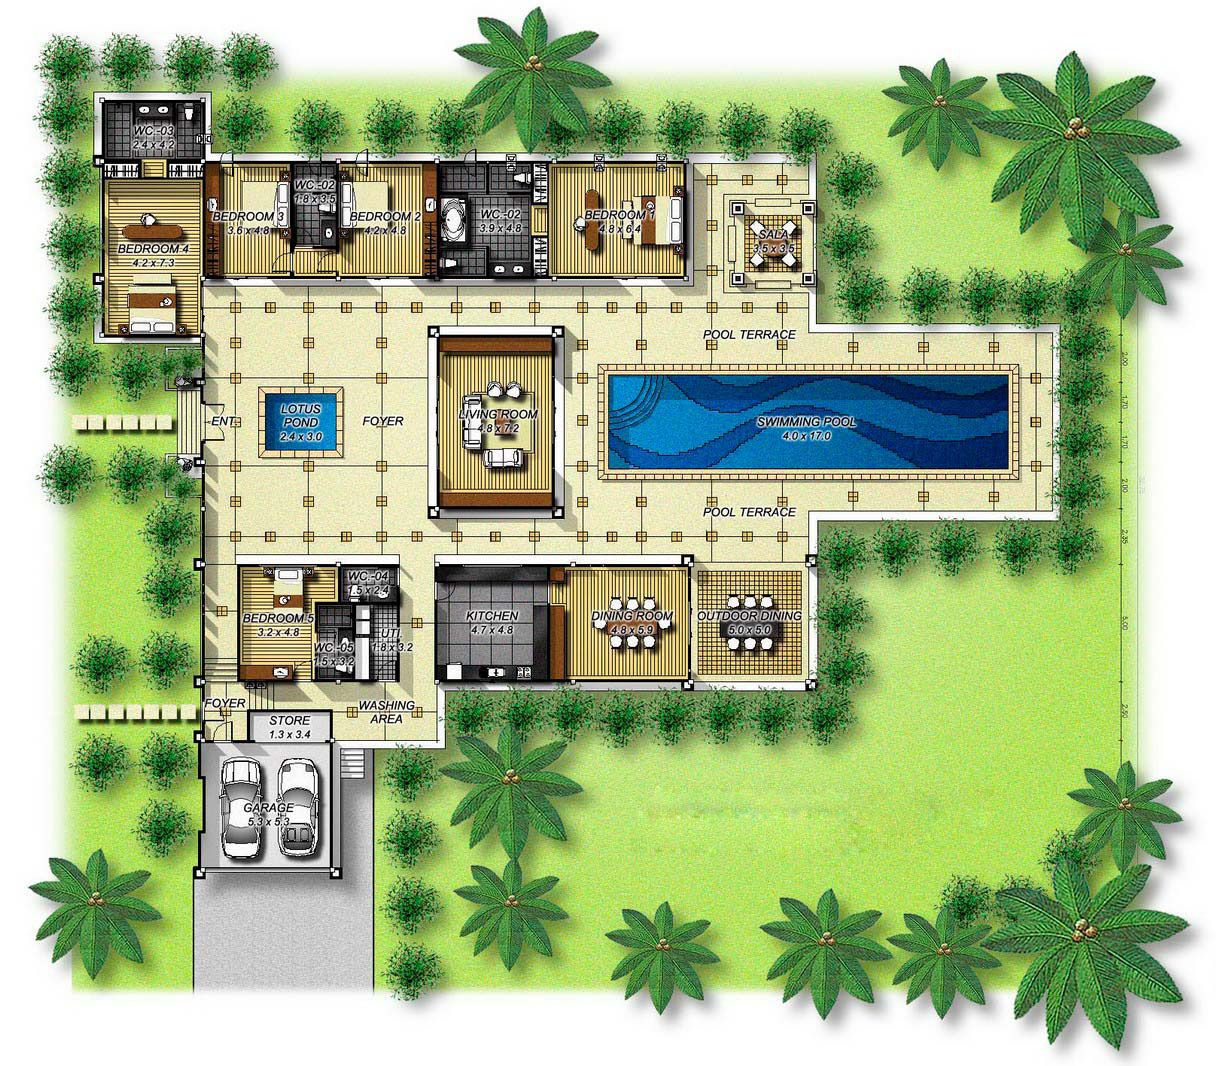 Central Courtyard House Plans House Plans Garden Design Plans Small House Garden Garden Design Layout